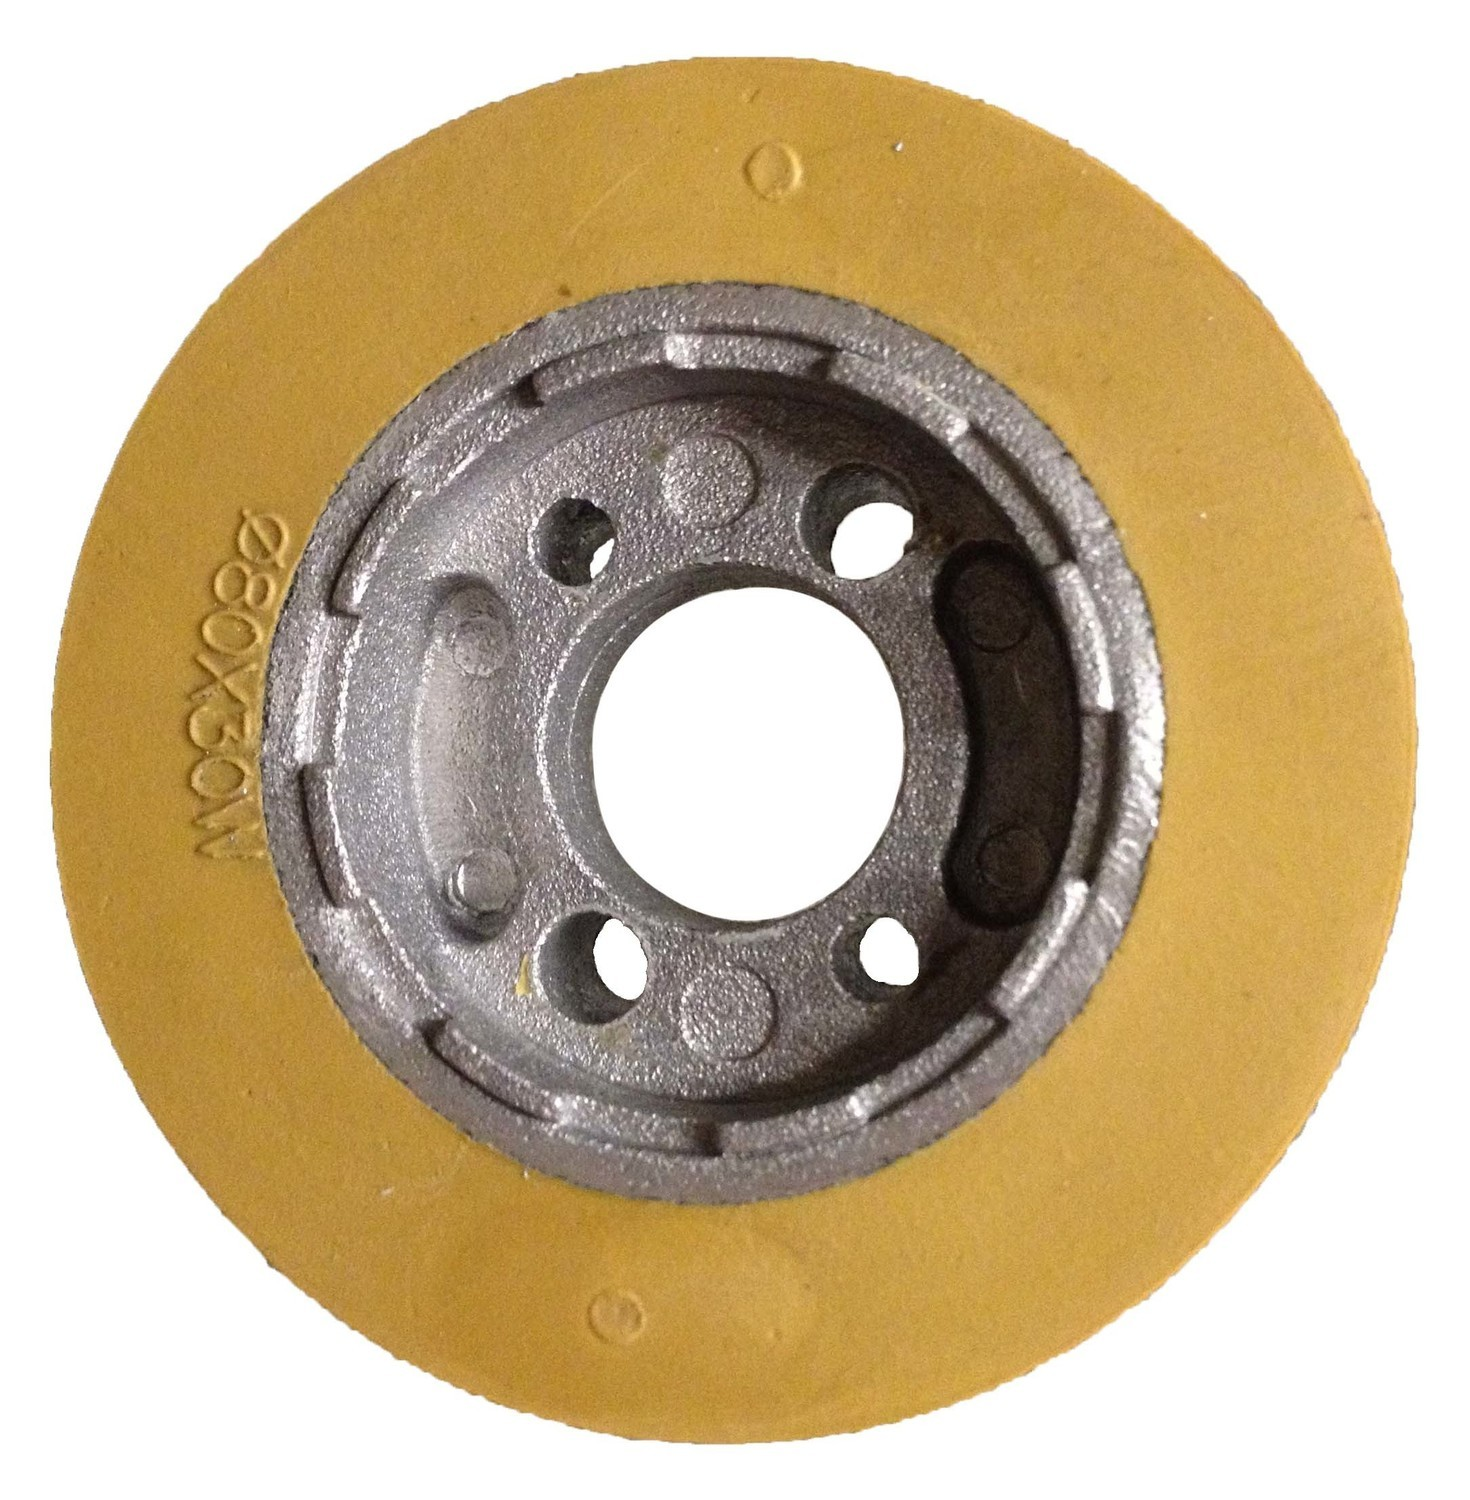 "φ3-1/8"" Rubber Feeder Wheels"